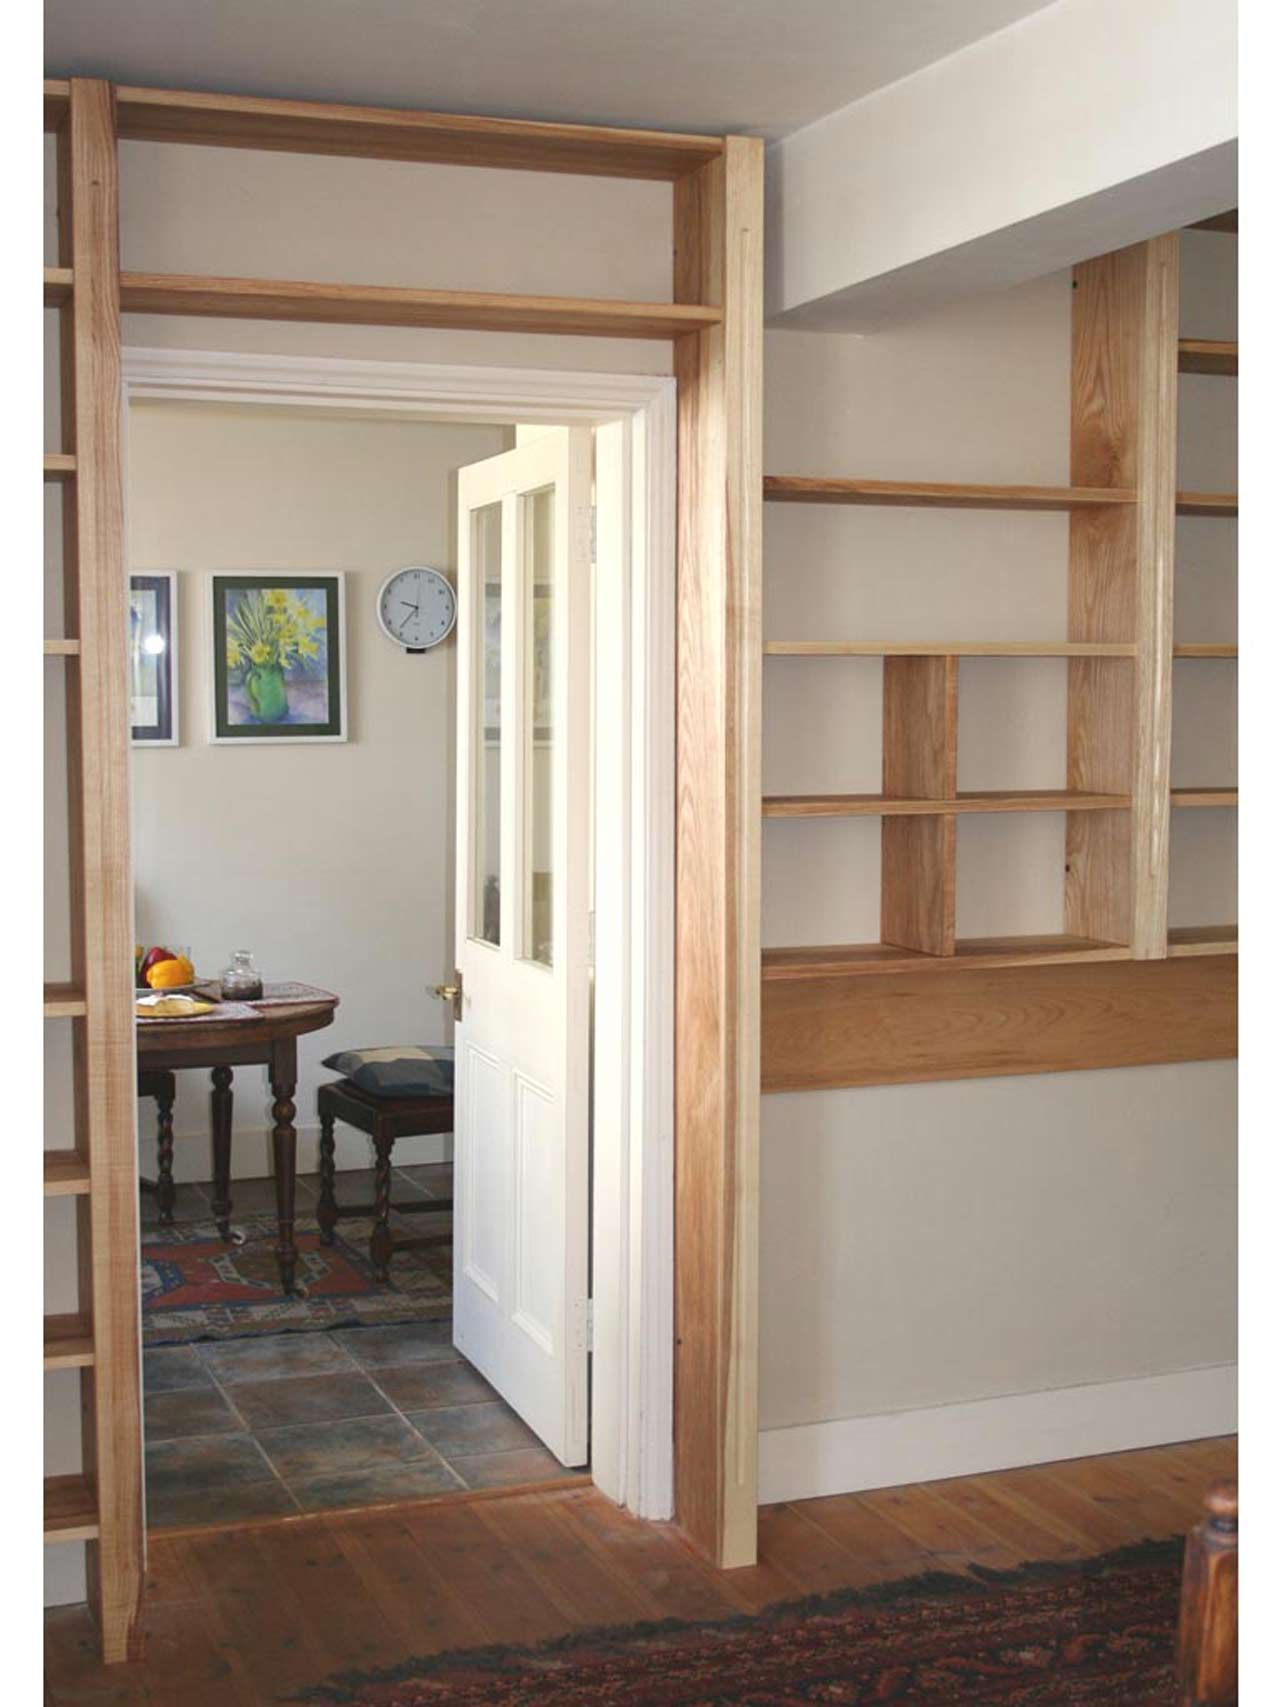 Unusual Shelving Units For Home ~ http://www.lookmyhomes.com/unusual-shelving-units-to-keep-your-books/